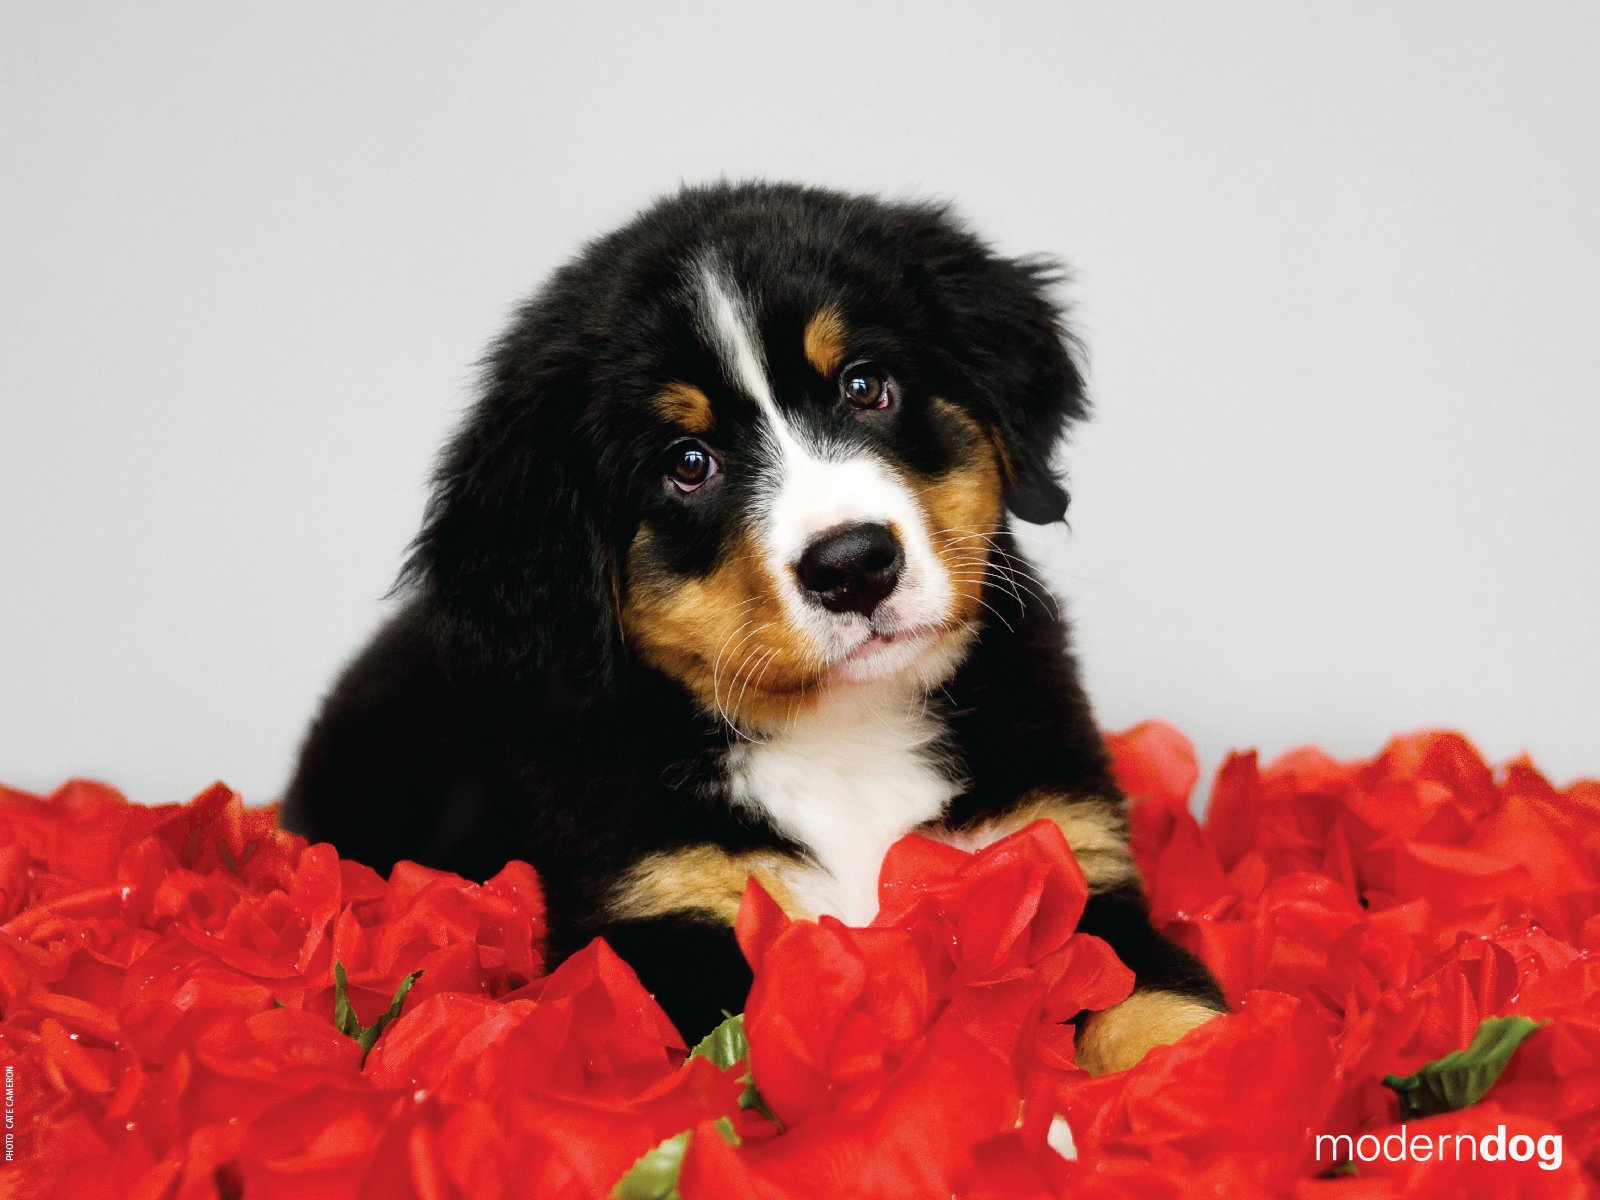 Cute Wallpapers Of Dogs And Puppies Puppies Free Modern Dog Wallpaper Modern Dog Magazine